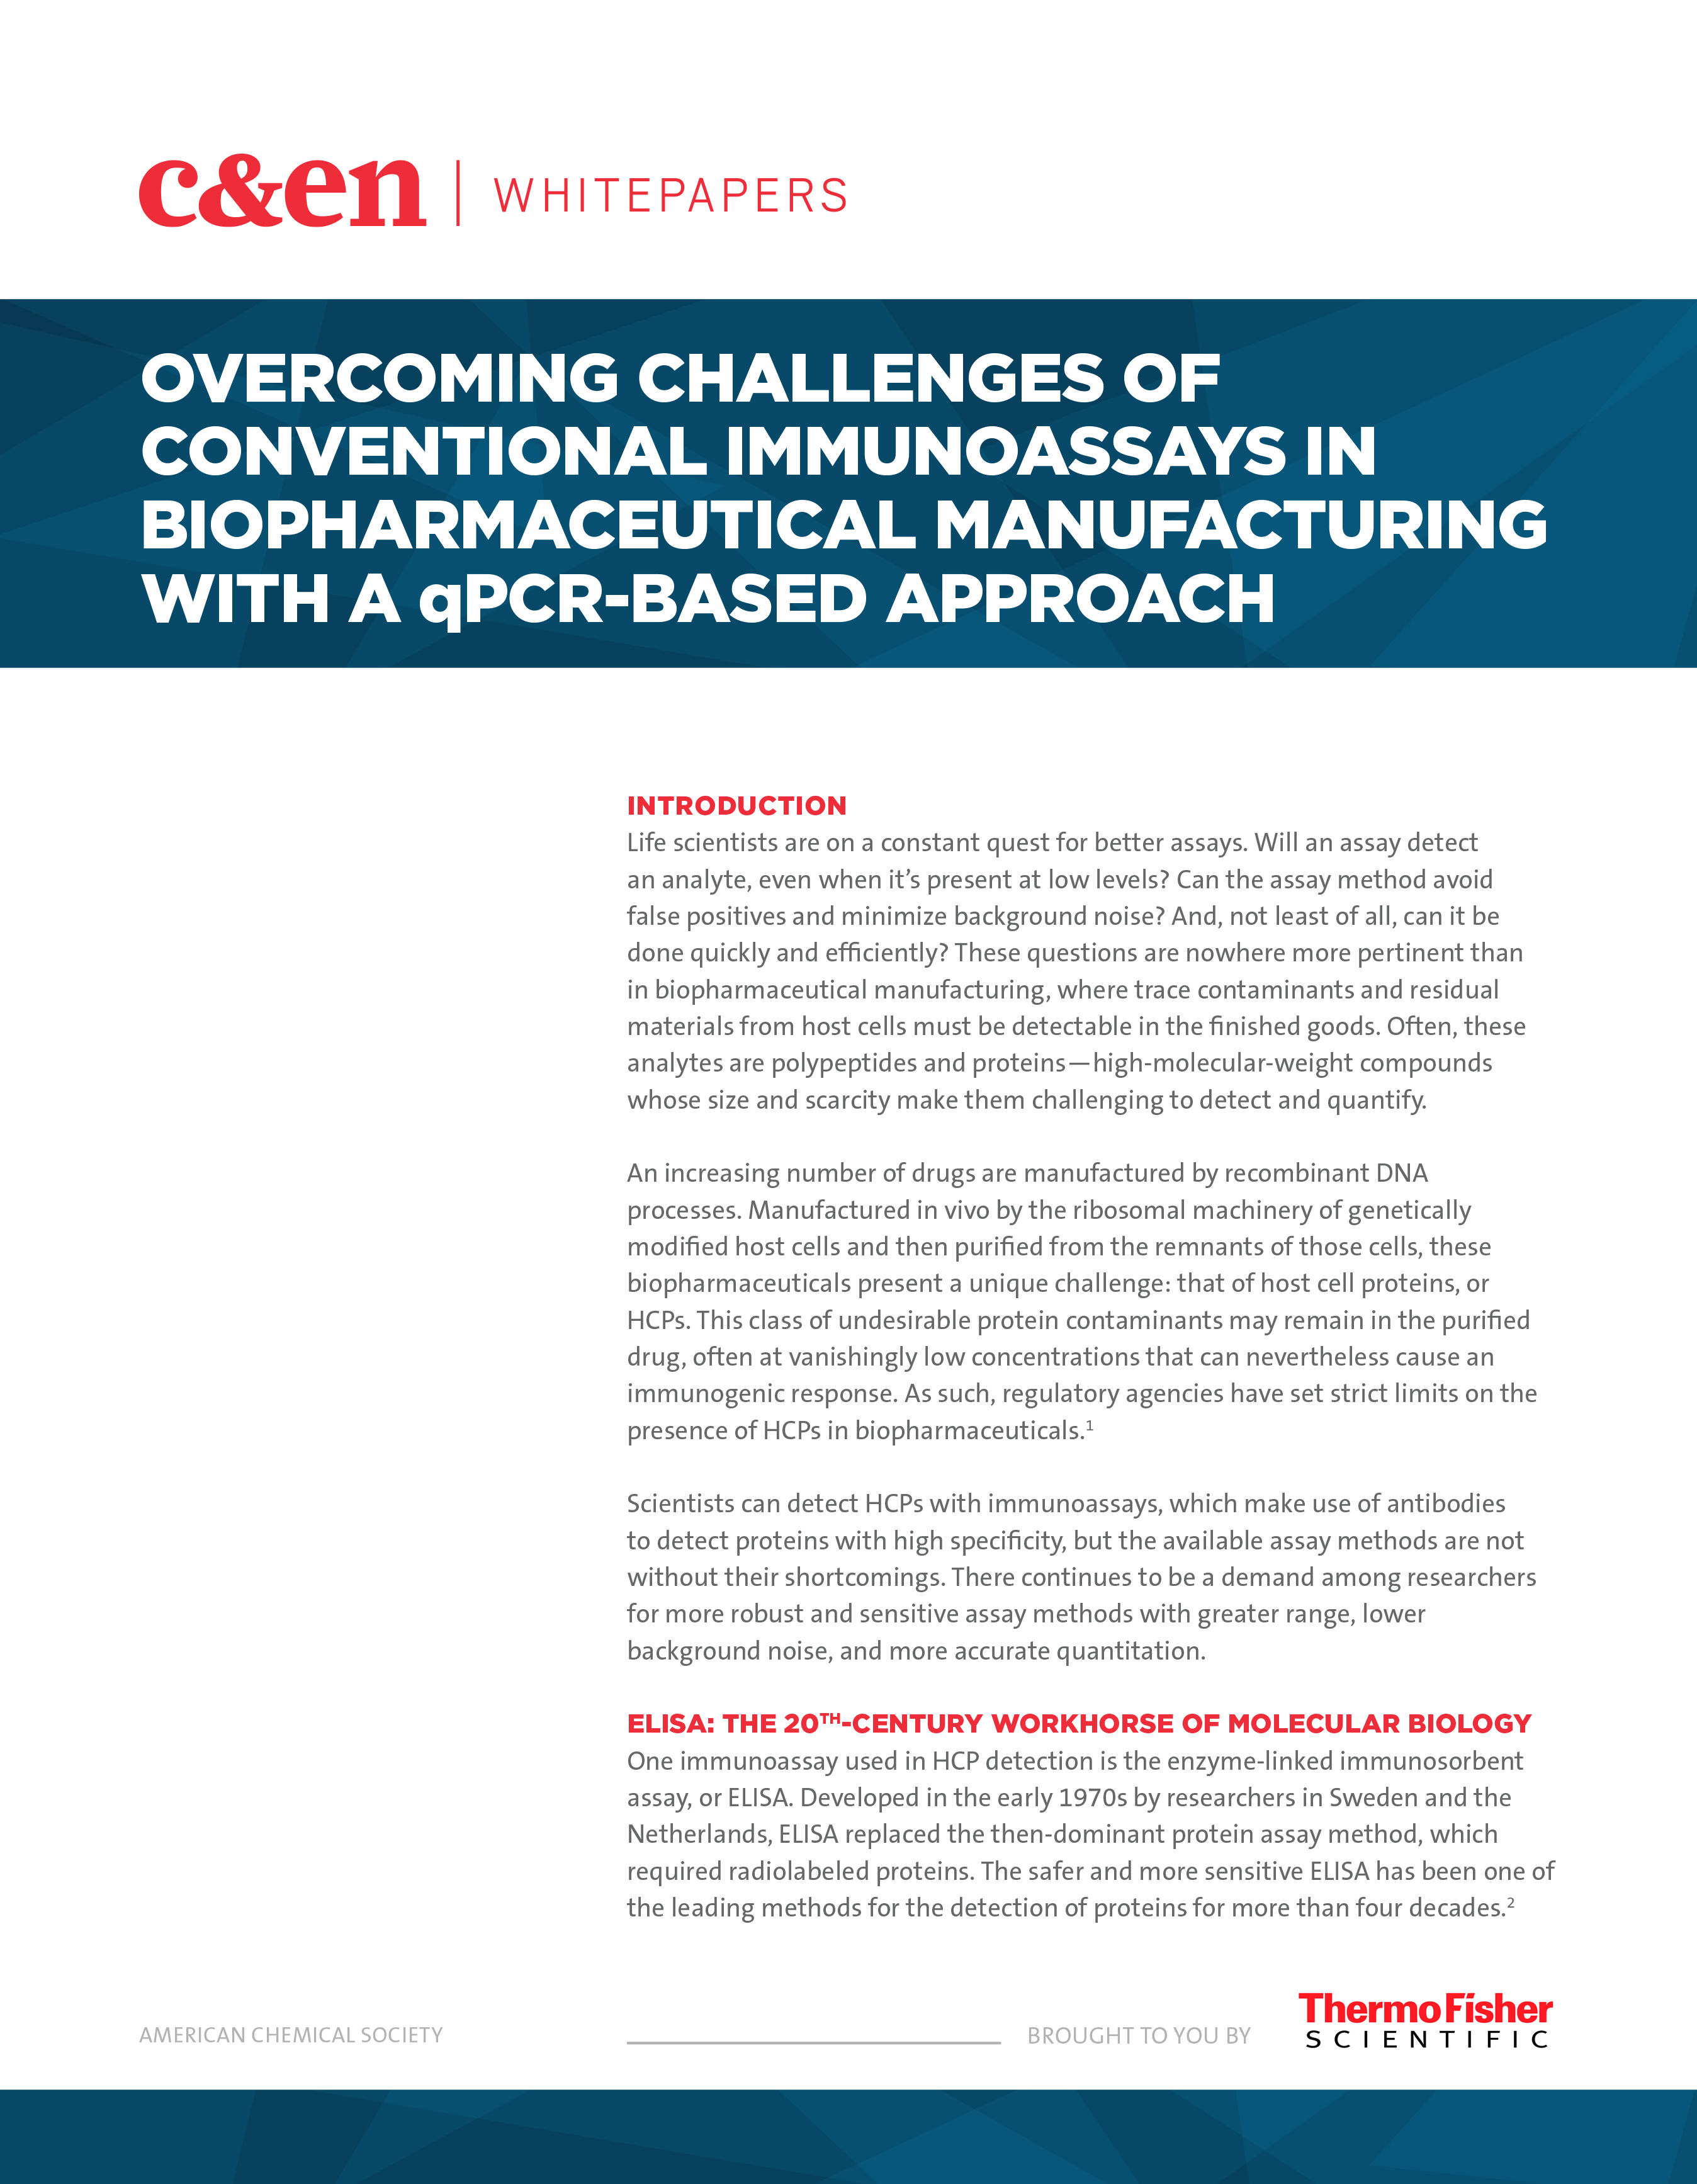 Overcoming Challenges of Conventional Immunoassays in Biopharmaceutical Manufacturing with a qPCR-Based Approach